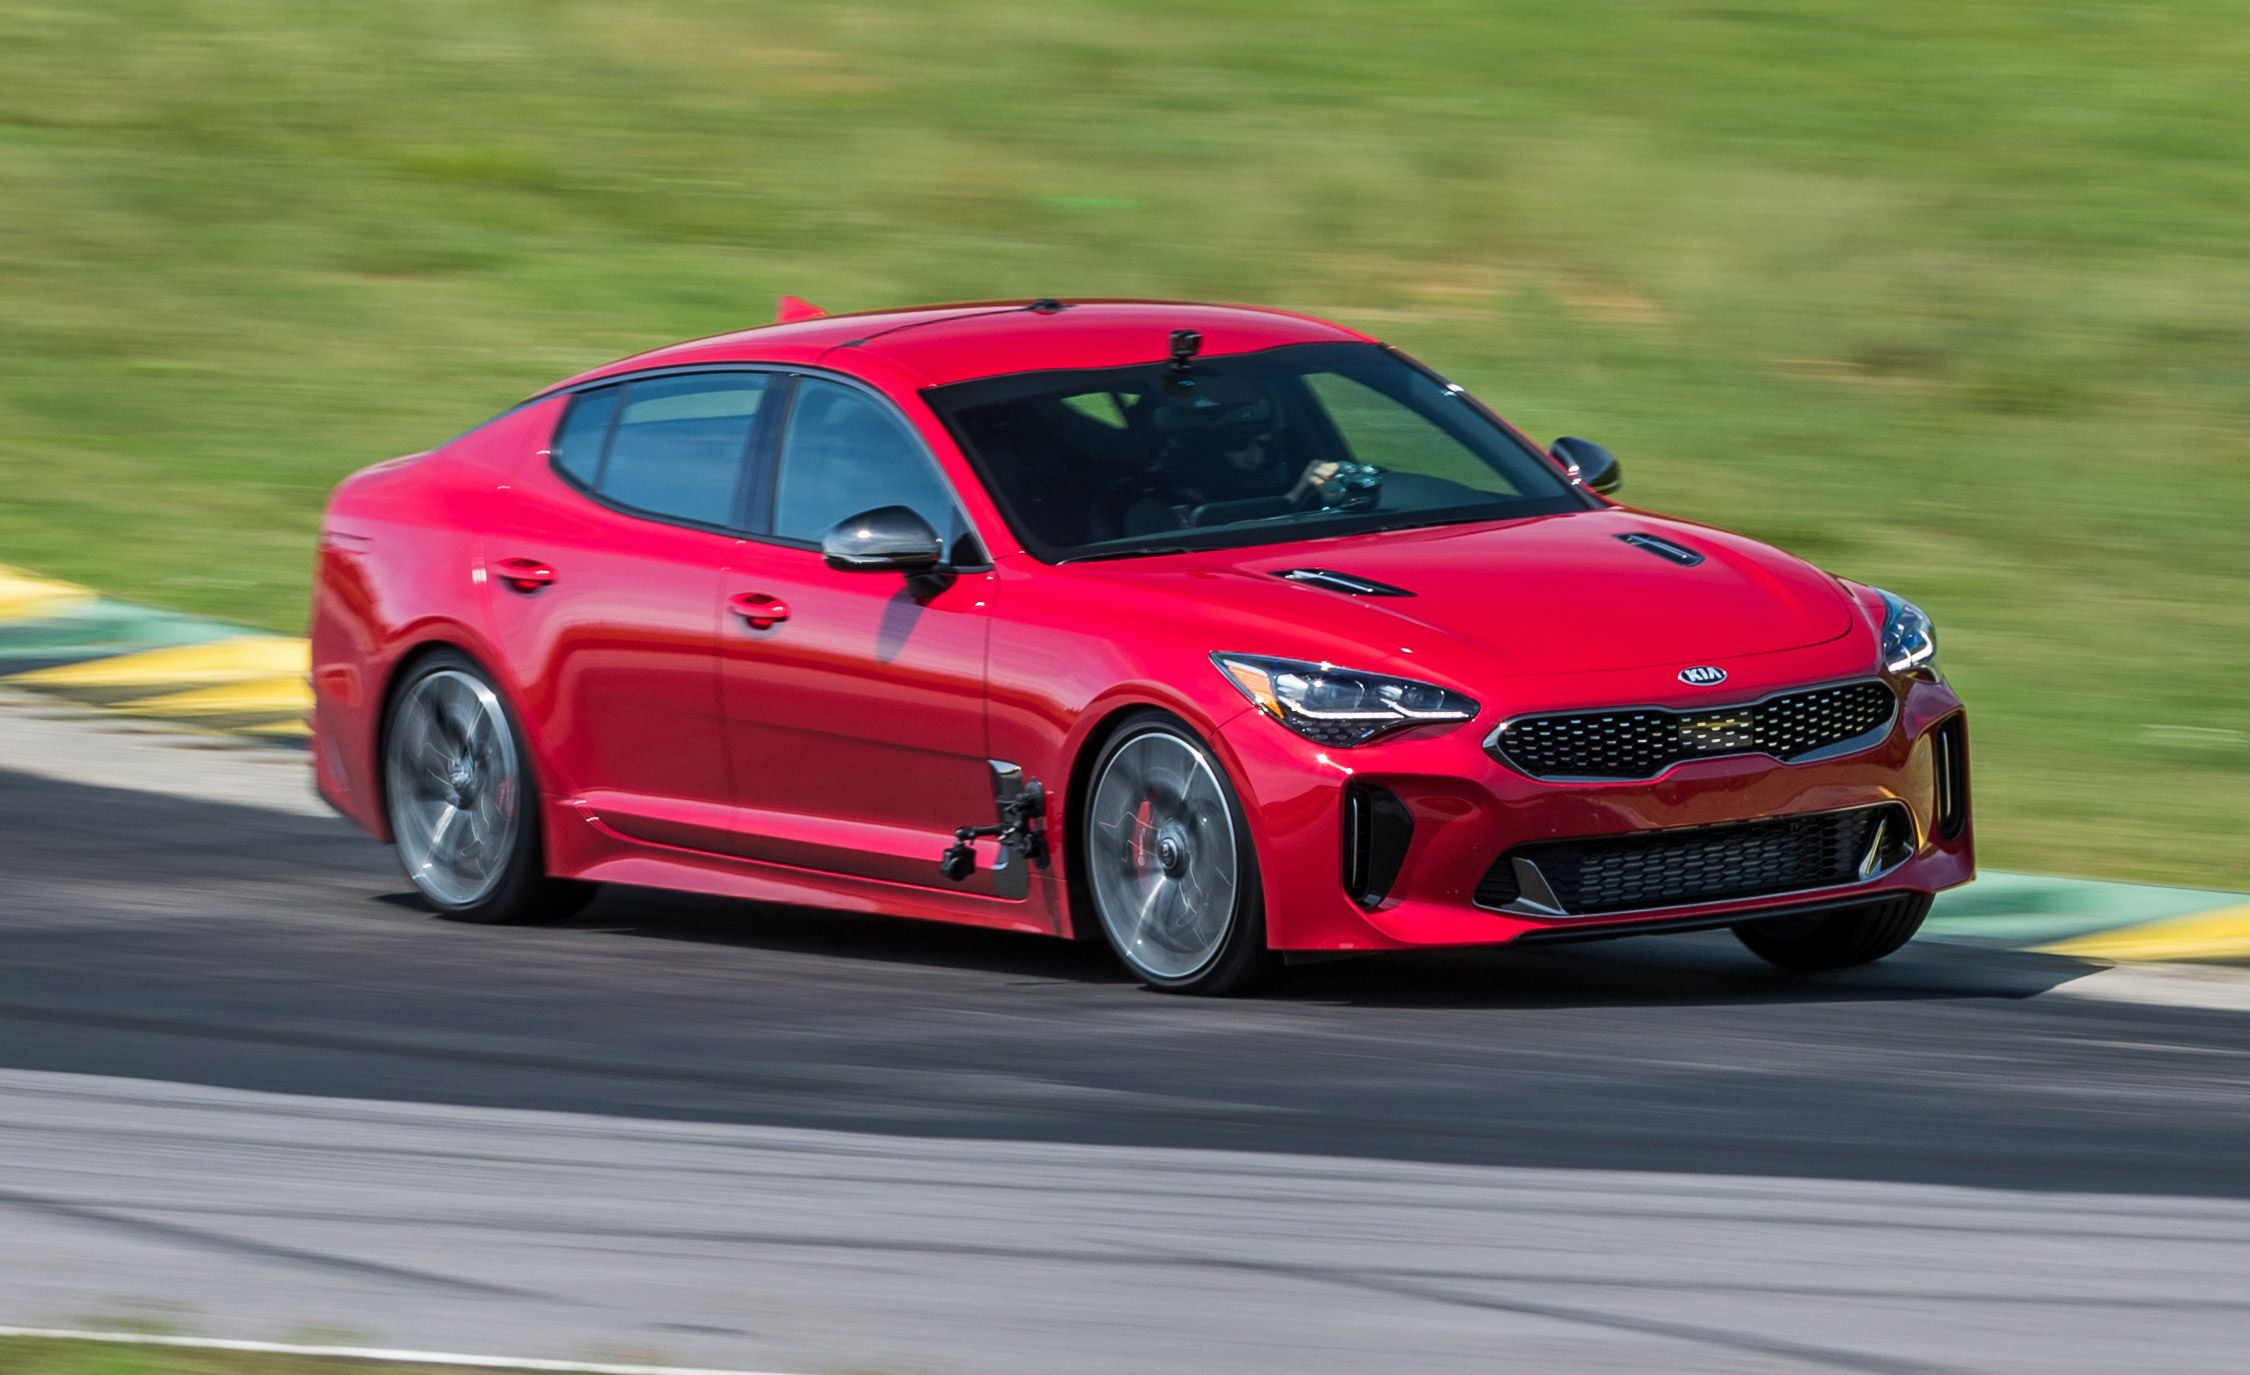 2018 Kia Stinger Gt Lightning Lap Results For 2018